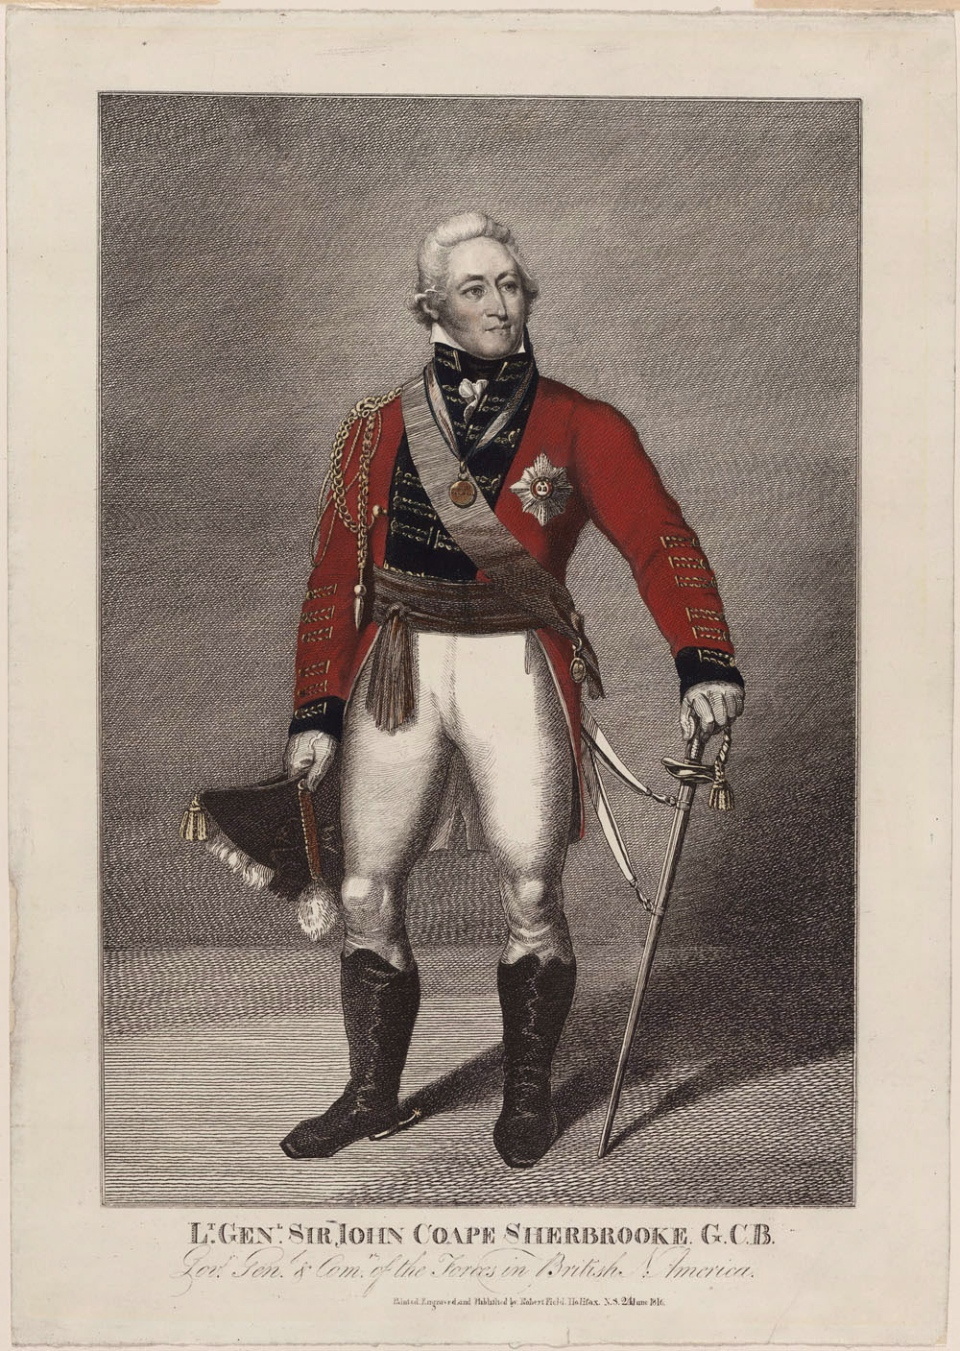 A portrait of Sir John Coape Sherbrooke is shown in a handout photo.